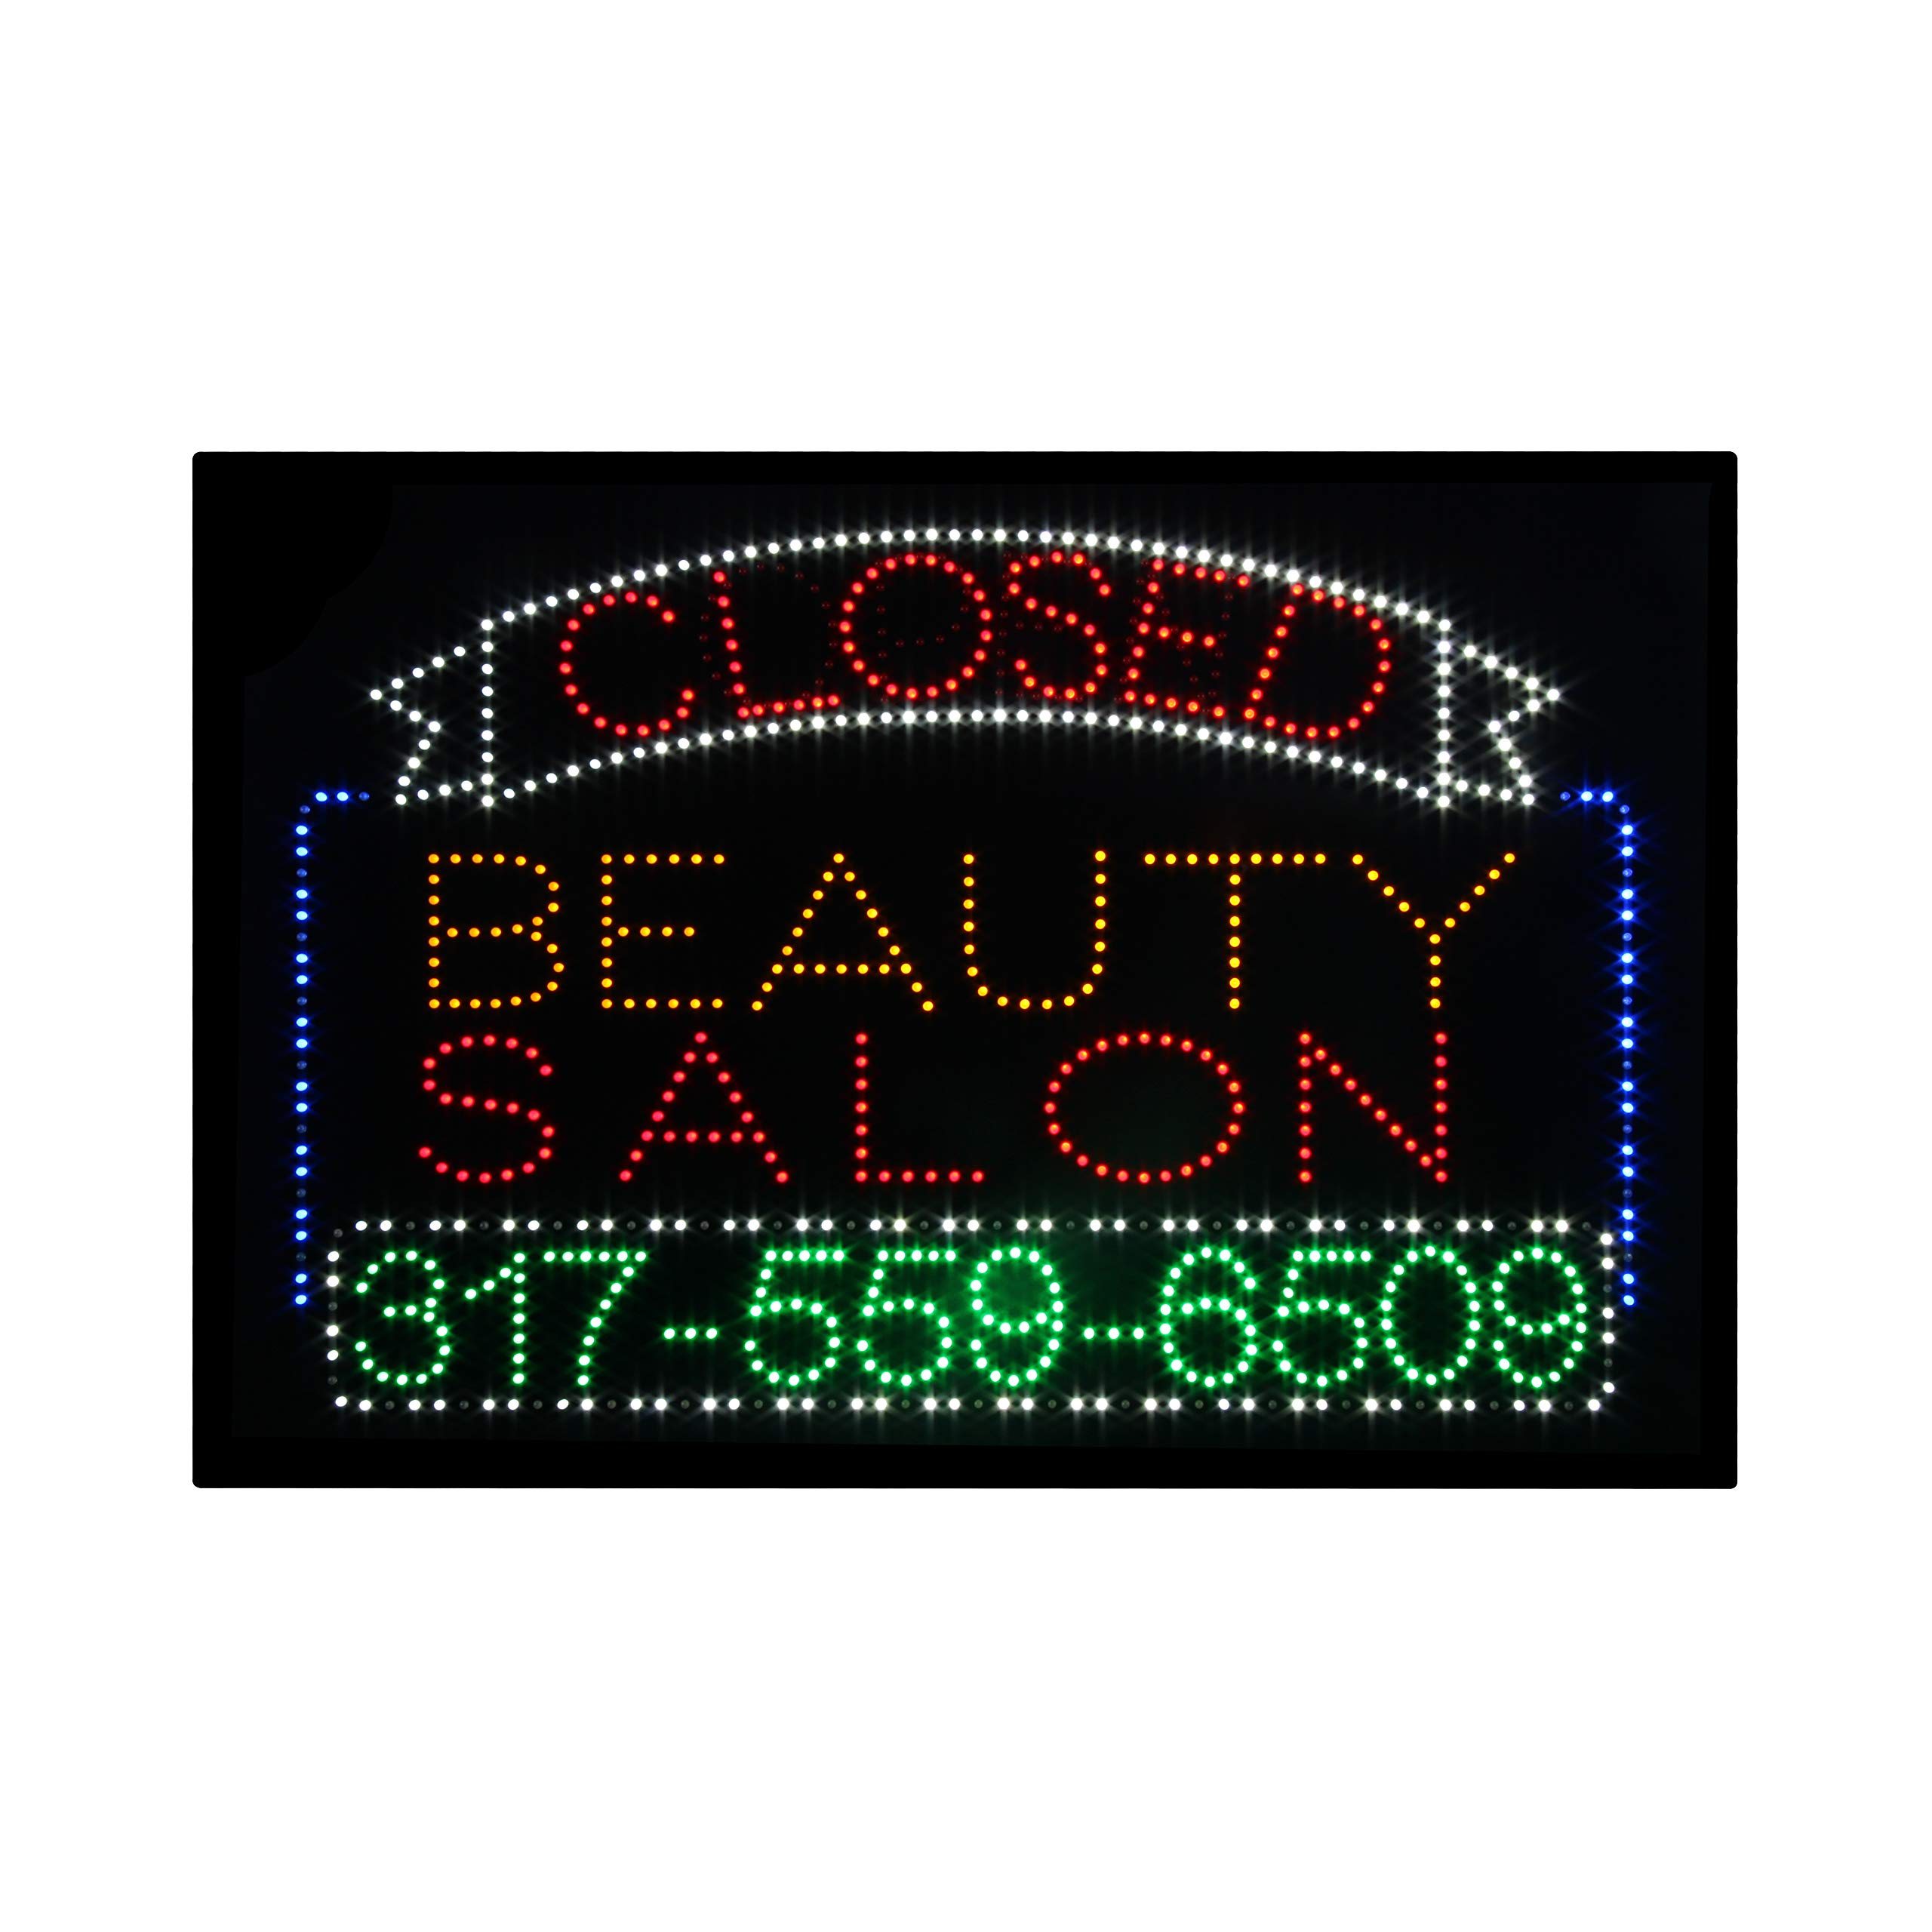 LED Beauty Salon Open Closed 2 in 1 Light Sign Super Bright Electric Advertising Message Display Board for Nails Spa Pedicure Facial Waxing Business Shop Store Window Bedroom 36 x 24 inches by HIDLY (Image #1)